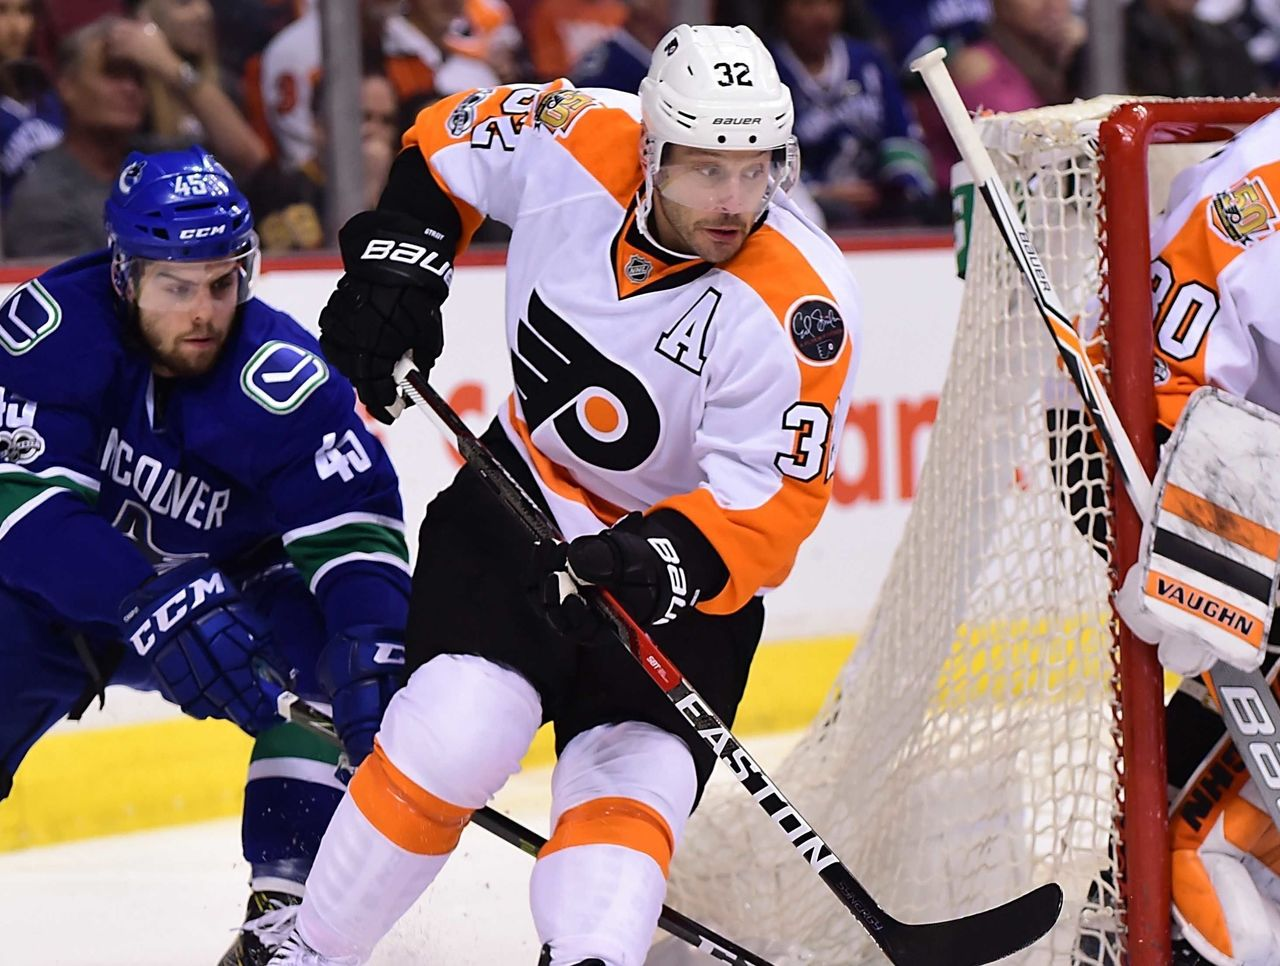 Cropped_2017-02-20t035751z_1360082017_nocid_rtrmadp_3_nhl-philadelphia-flyers-at-vancouver-canucks